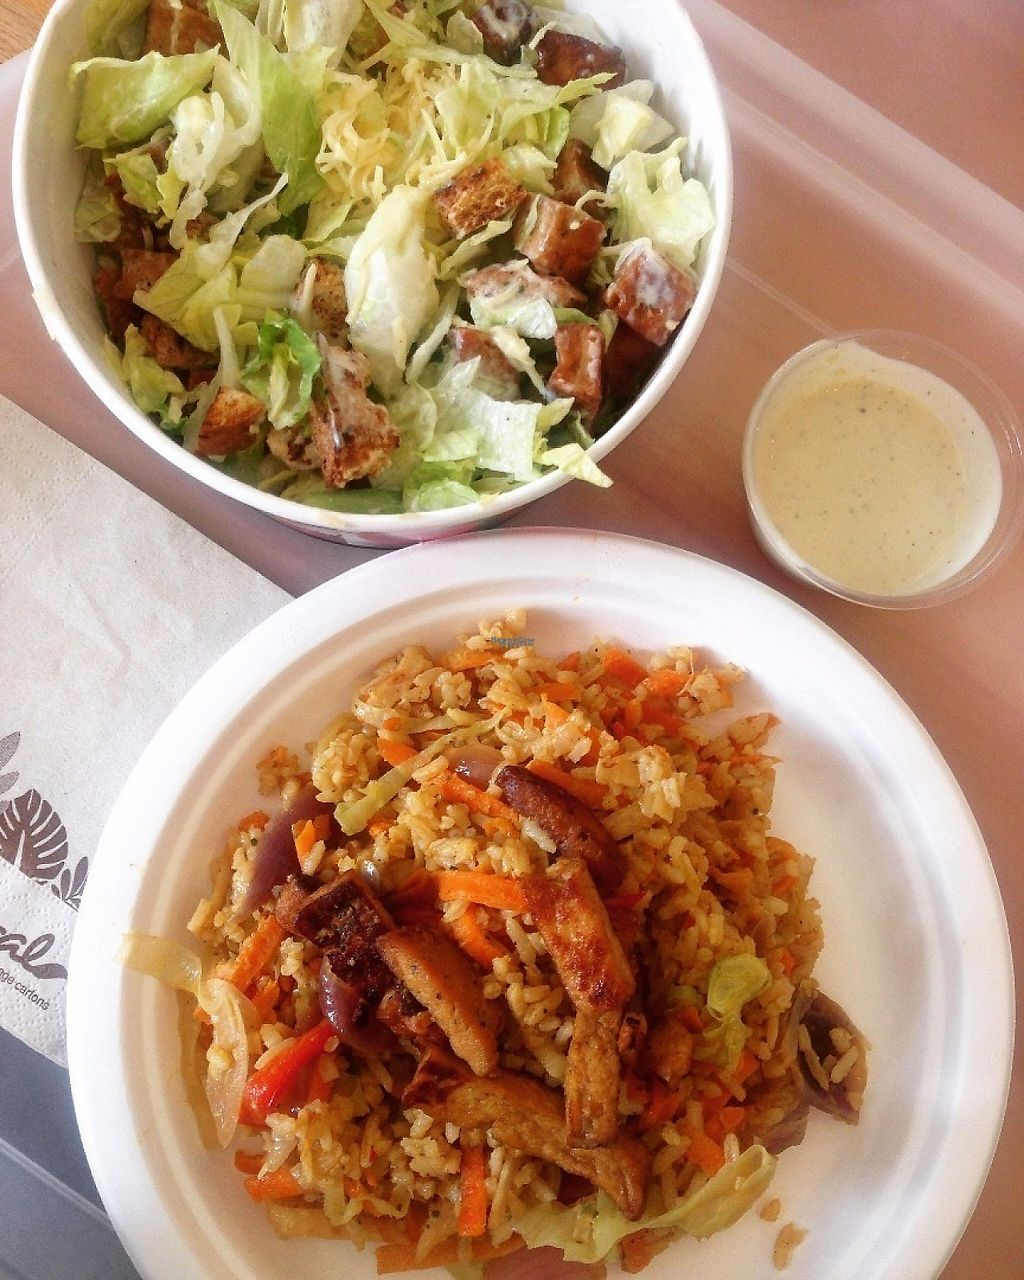 """Photo of Great Bistro  by <a href=""""/members/profile/imendes"""">imendes</a> <br/>fried rice with tofu & caesar salad <br/> November 17, 2016  - <a href='/contact/abuse/image/76811/191487'>Report</a>"""